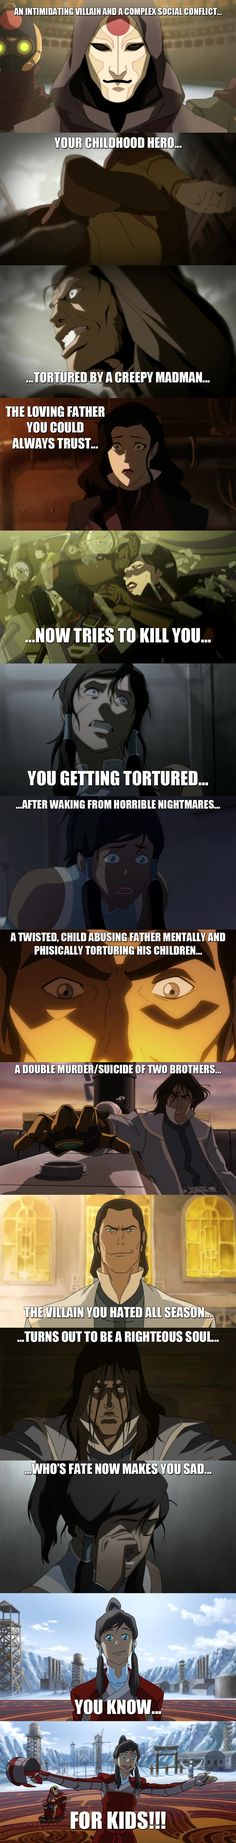 Legend of Korra - Kid's show by yourparodies.deviantart.com on @deviantART